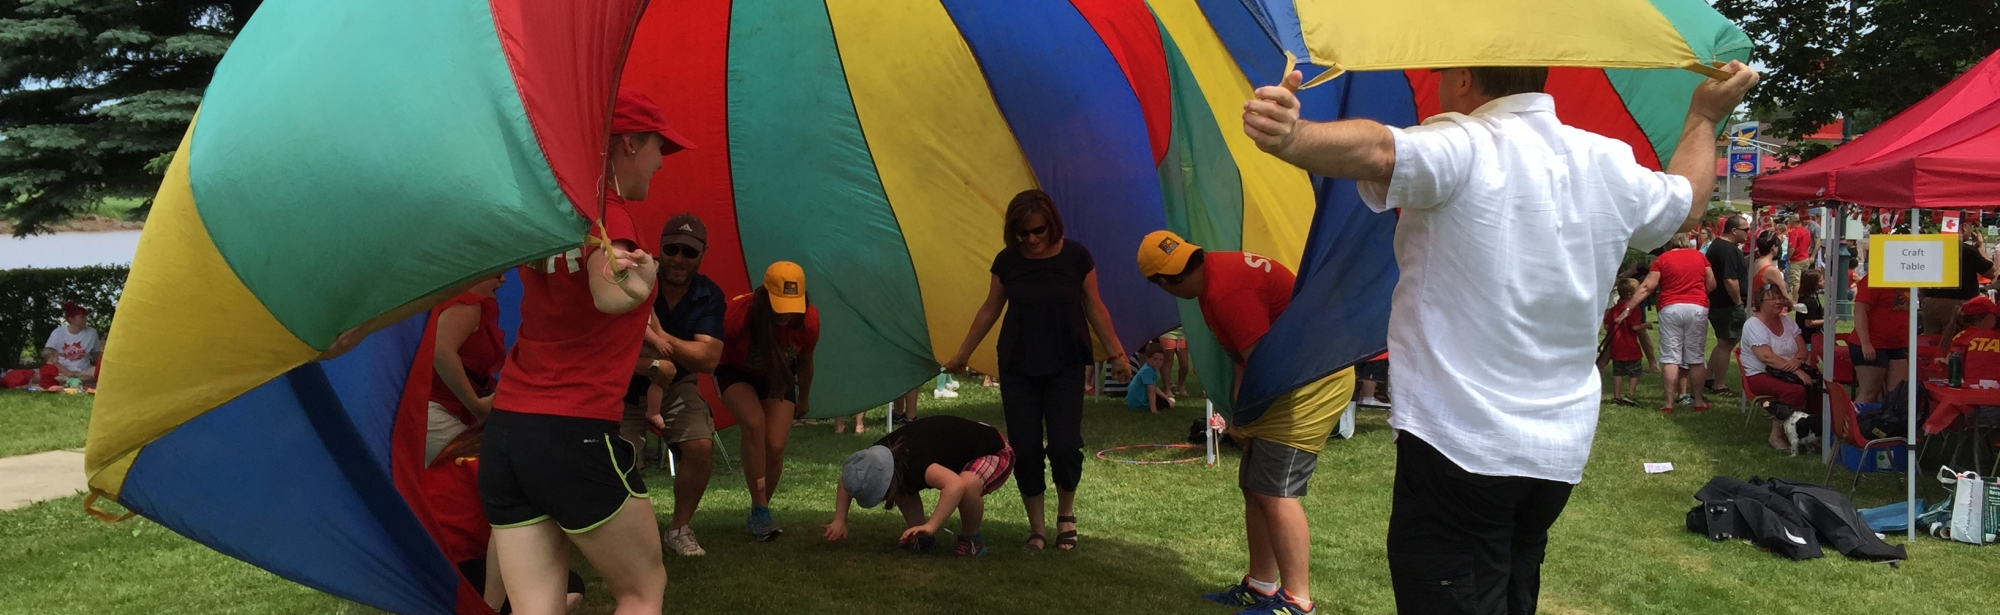 Youth playing under a parachute in the sun